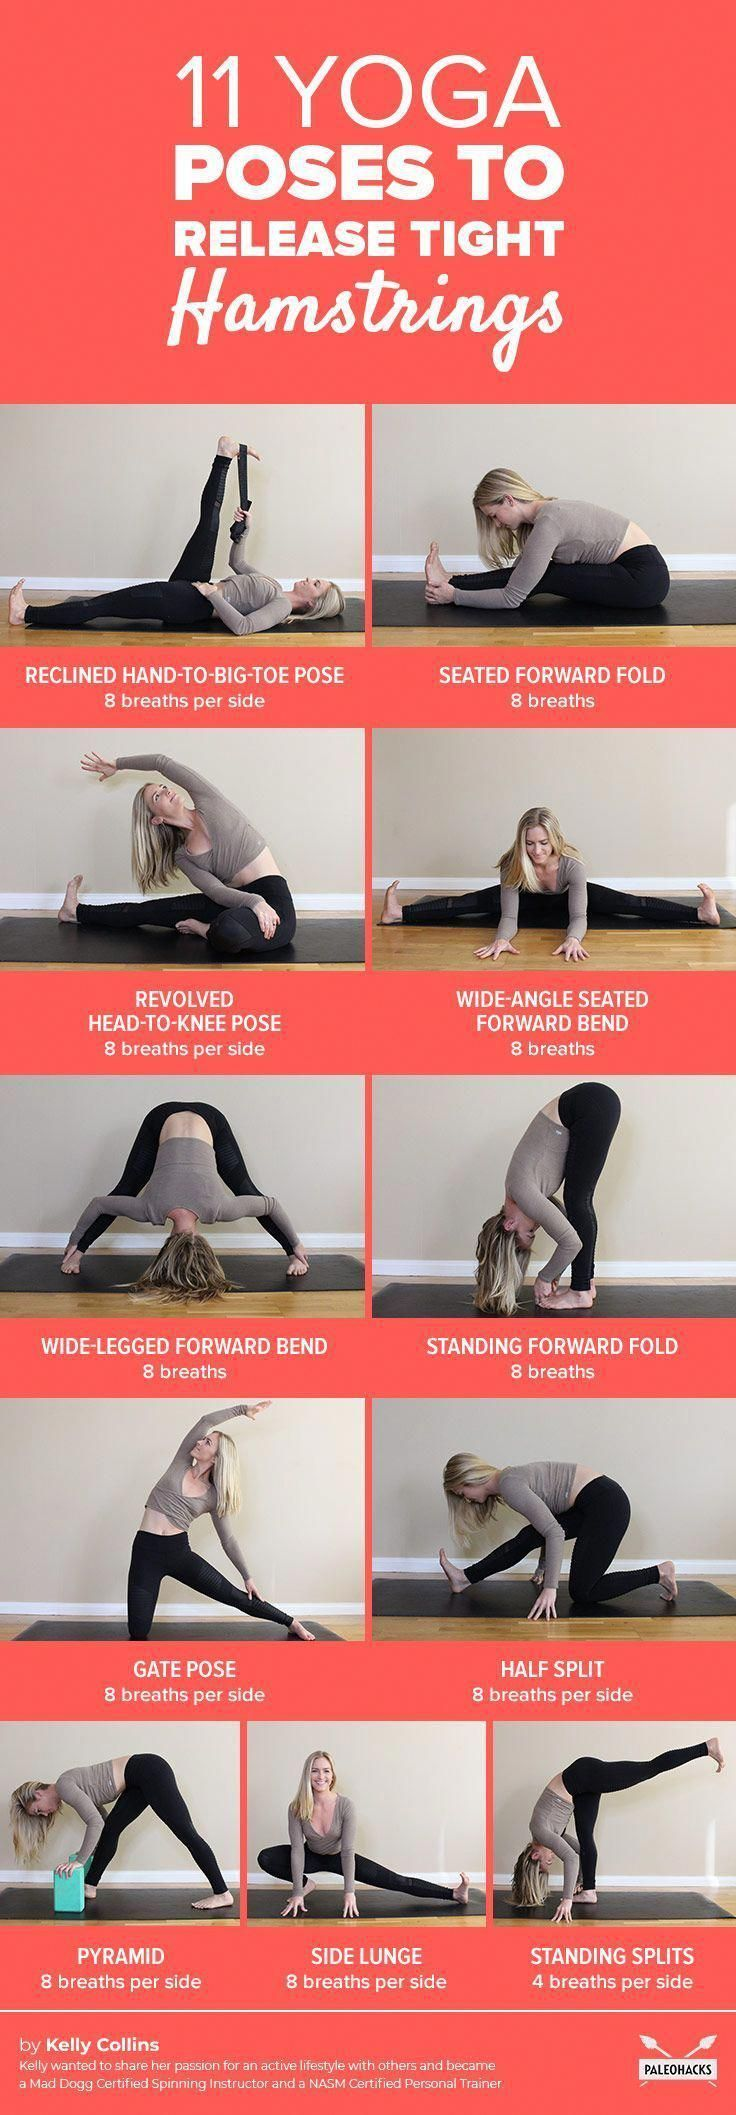 Poses to release tight hamstrings #Yogaposes #hamstrings #poses